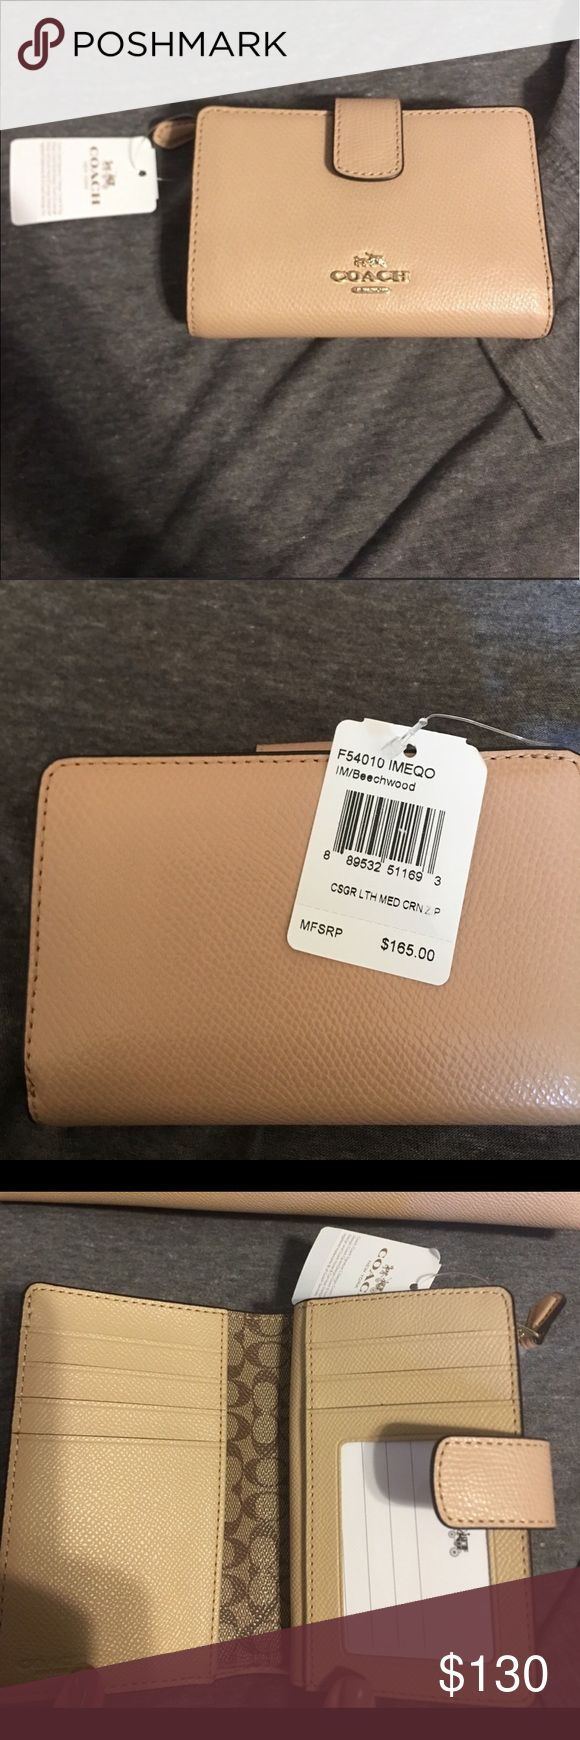 Brand new Coach wallet zip closure Crossgrain Leather Gold Hardware Six Credit Card Slots, One Bill Compartment, One Zip Coin Compartment Clear ID Slip 5.5'' (L) X 3.5'' (H) Coach Bags Wallets